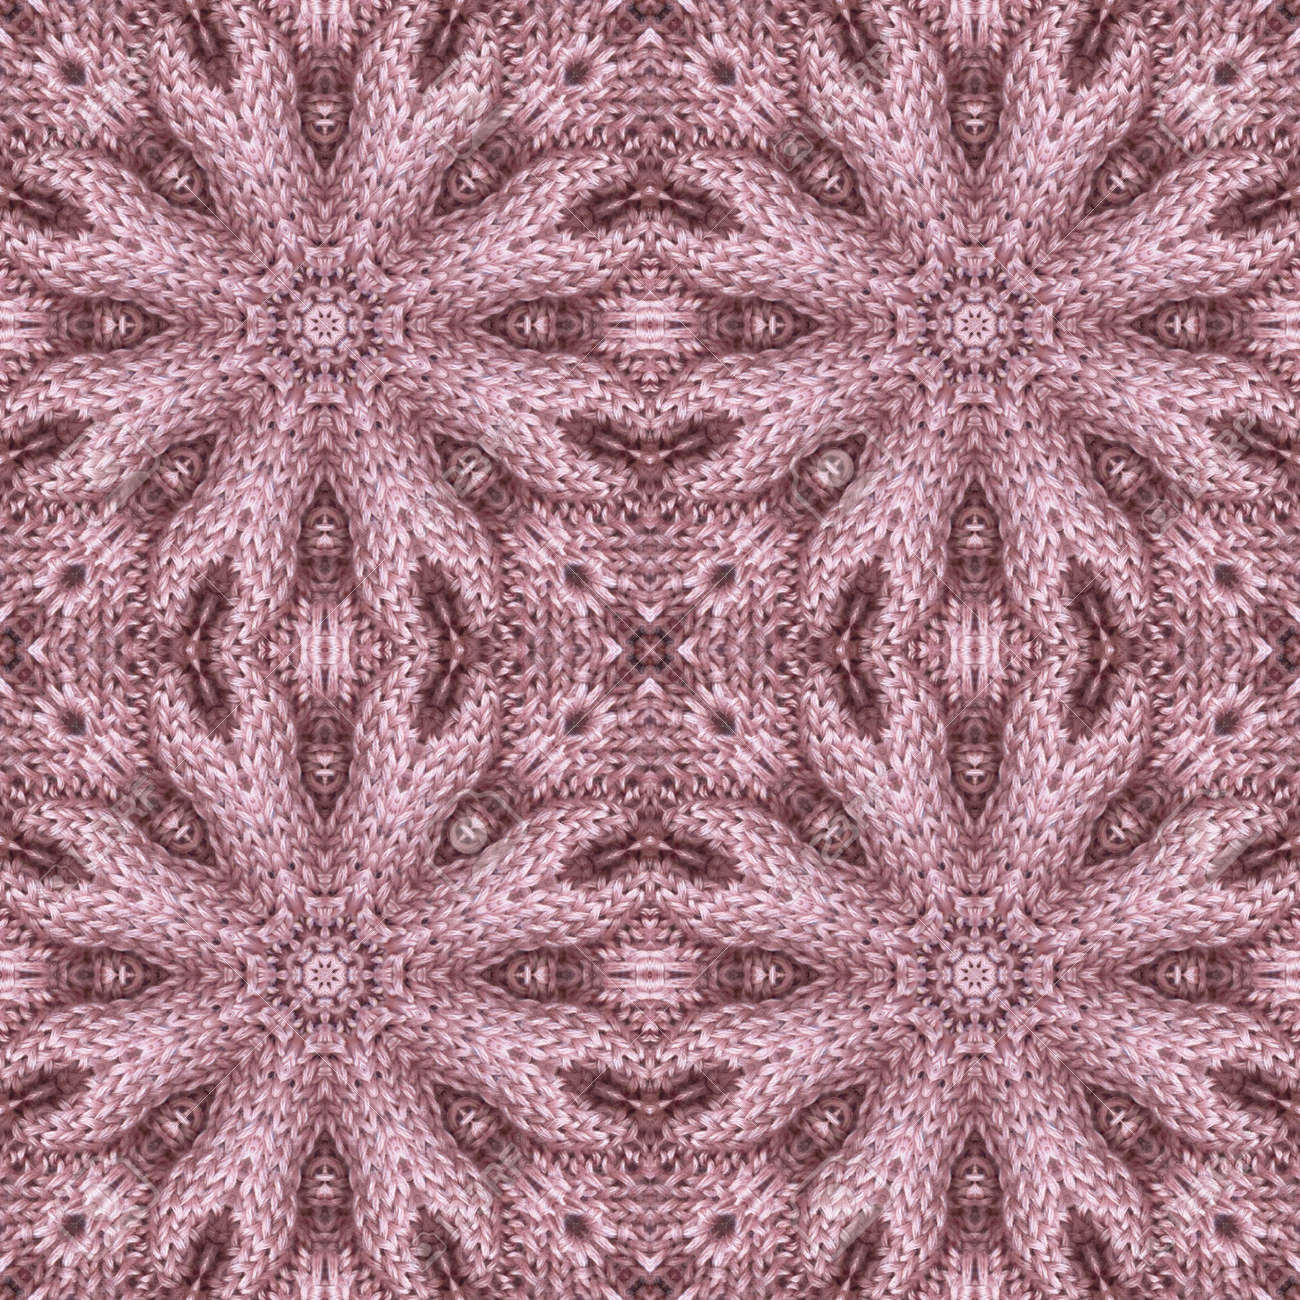 Knitted seamless pattern with relief flowers. Floral ornament in dusty pink colors. Beautiful print for fabric and textile. - 173407853